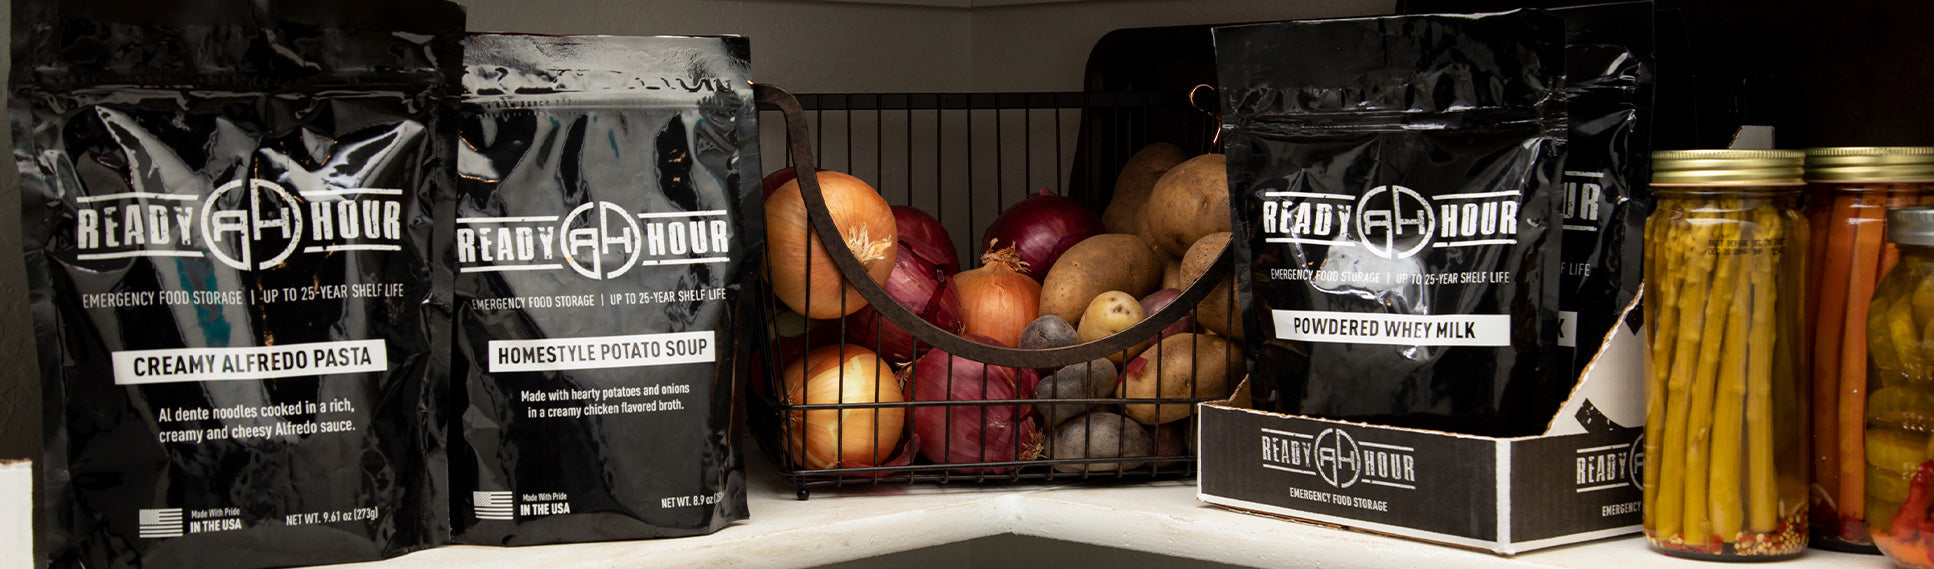 Case Pack Food Pouches fit easily in your pantry and are convenient to prepare